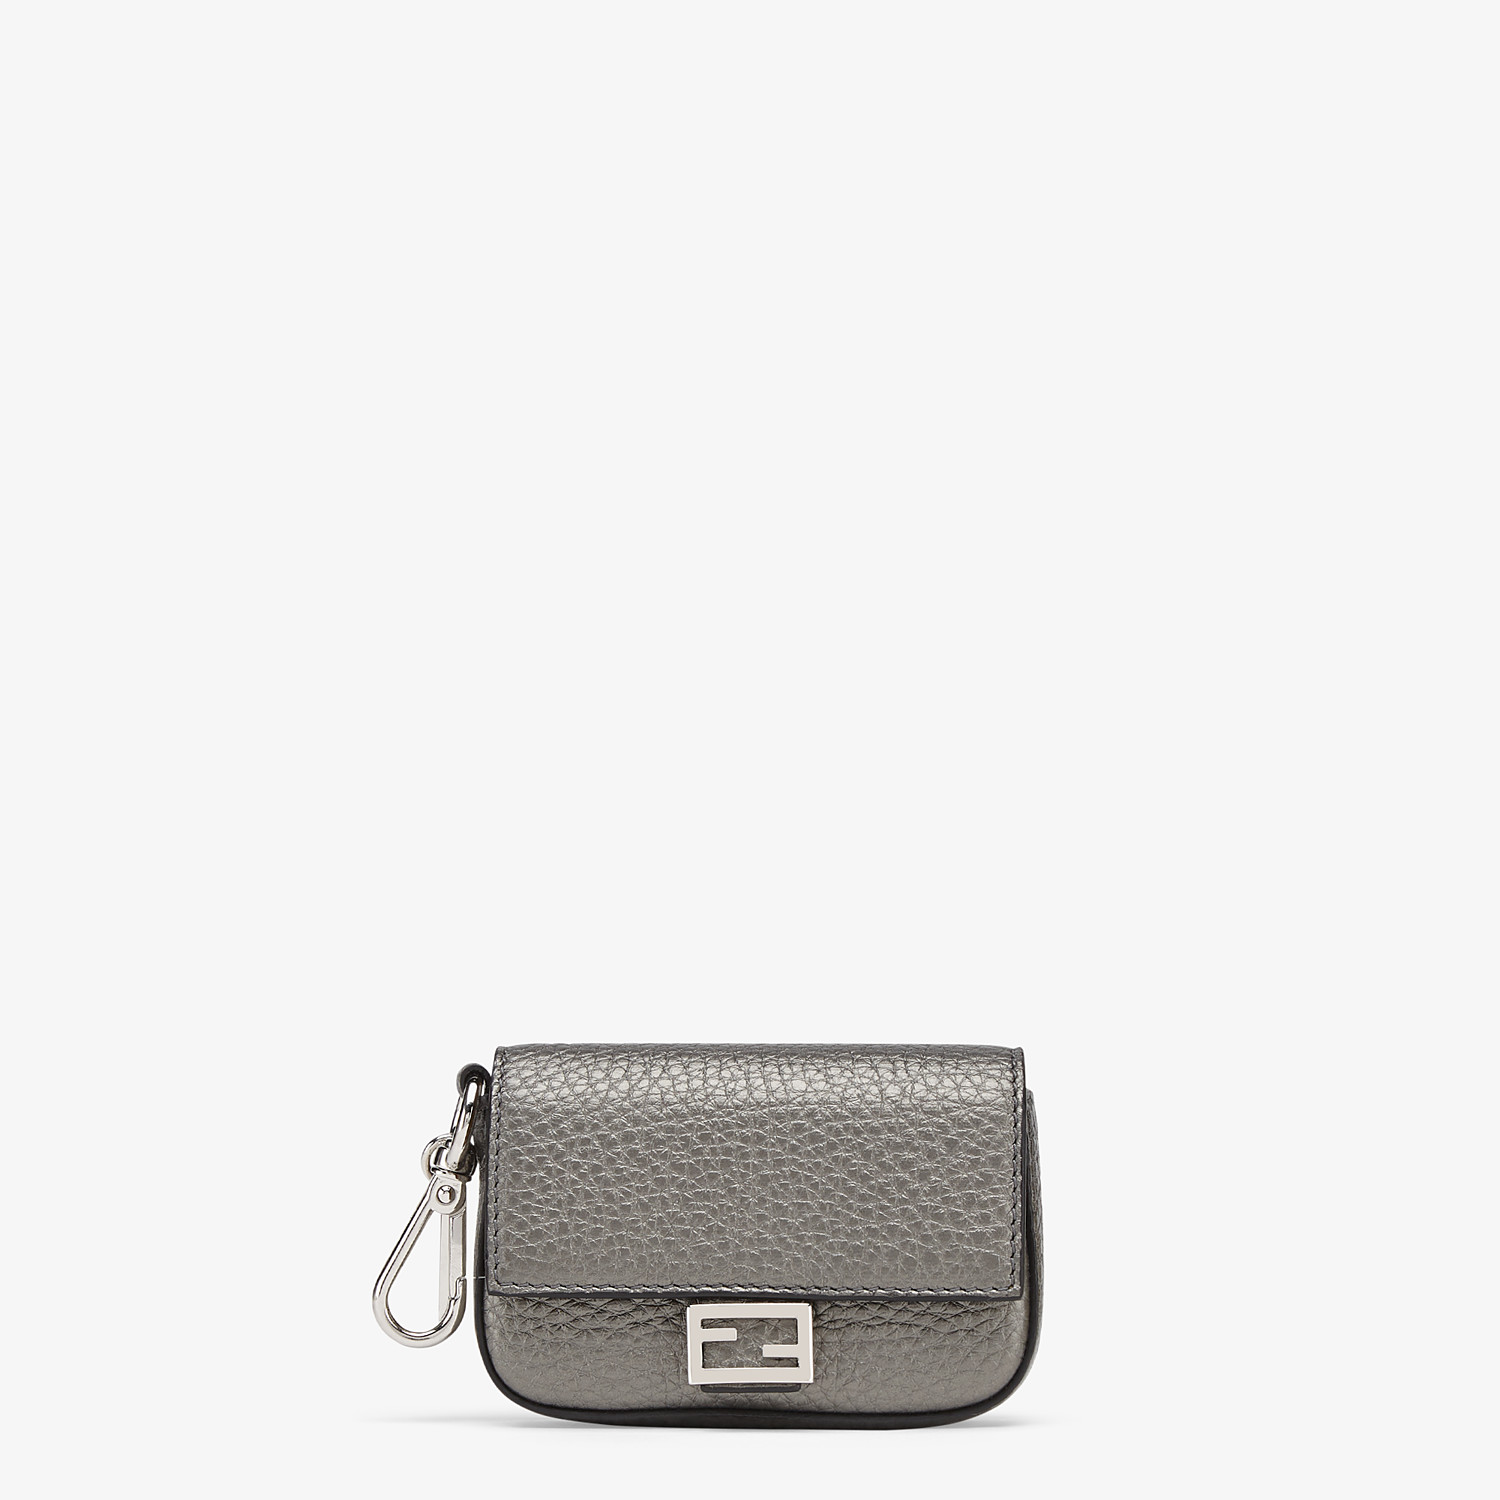 FENDI NANO BAGUETTE CHARM - Gray leather charm - view 1 detail